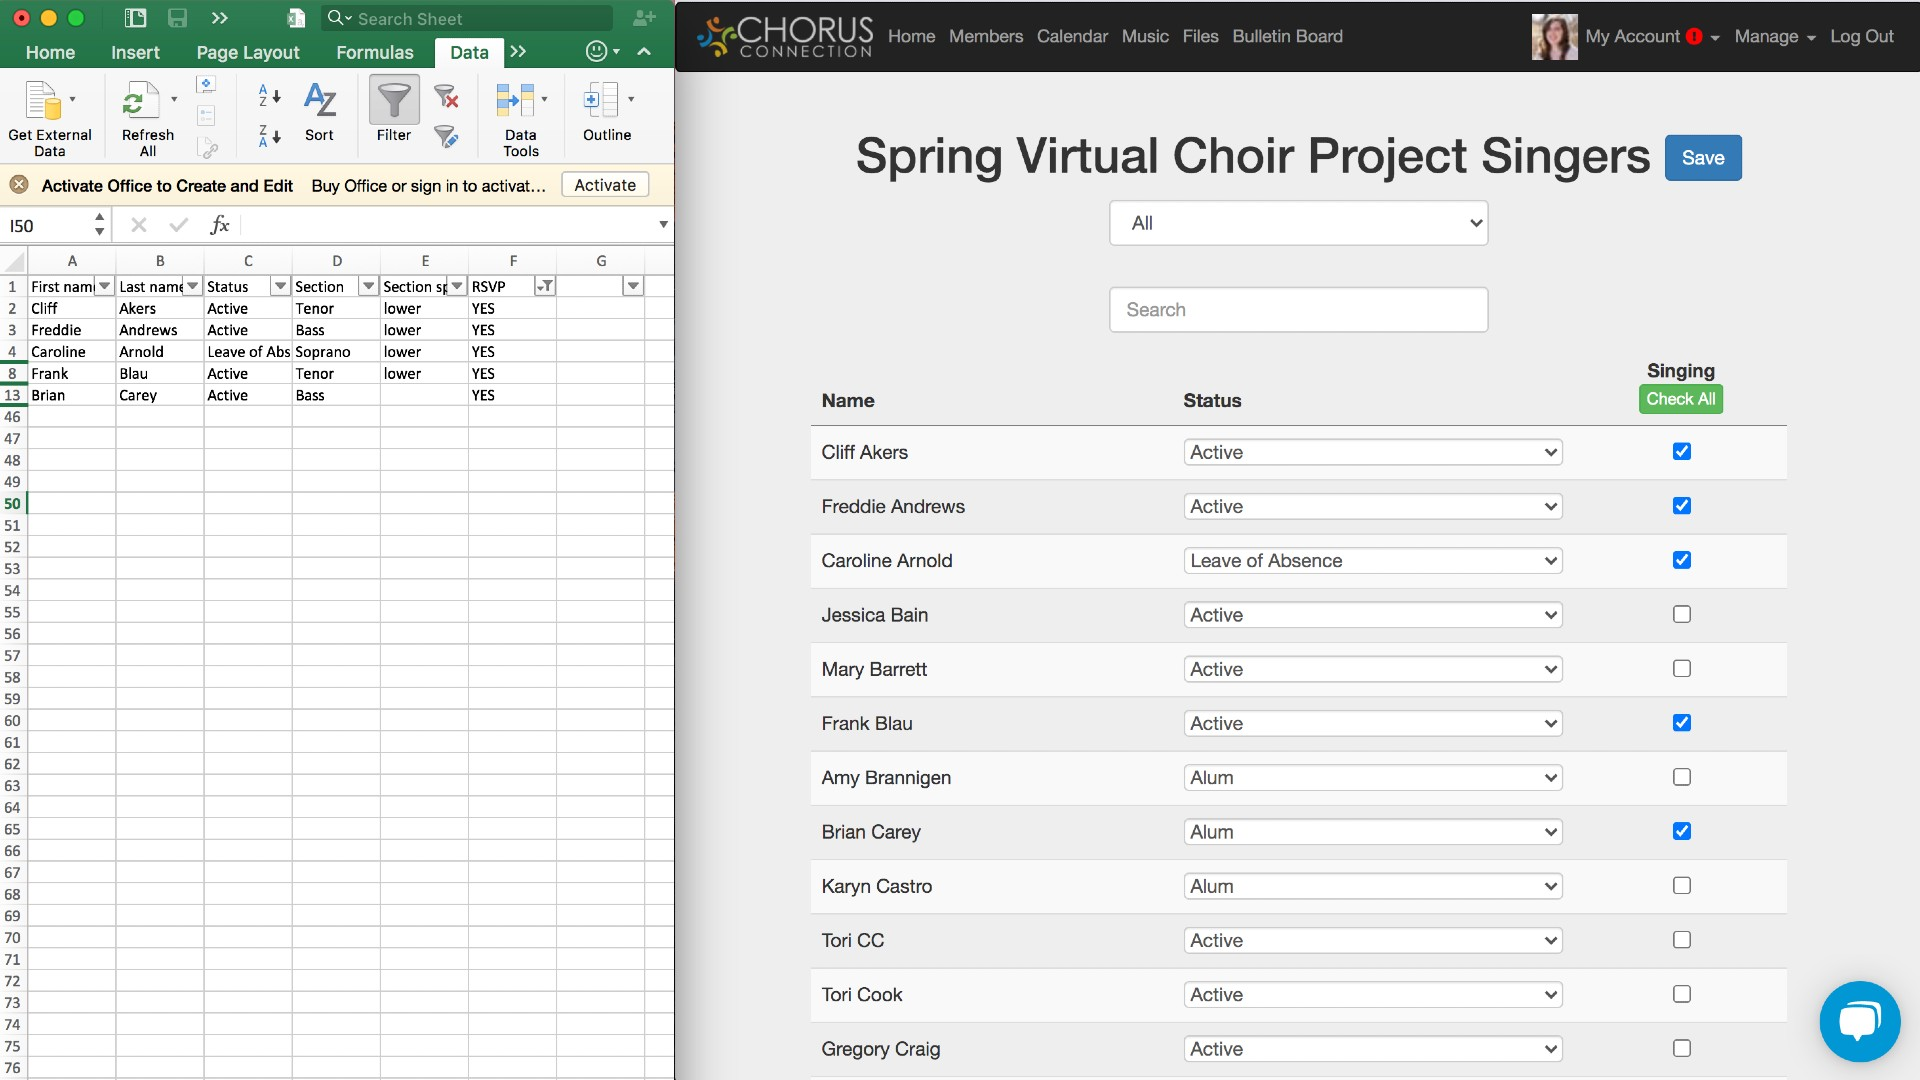 Manage Singer in Chorus Connection